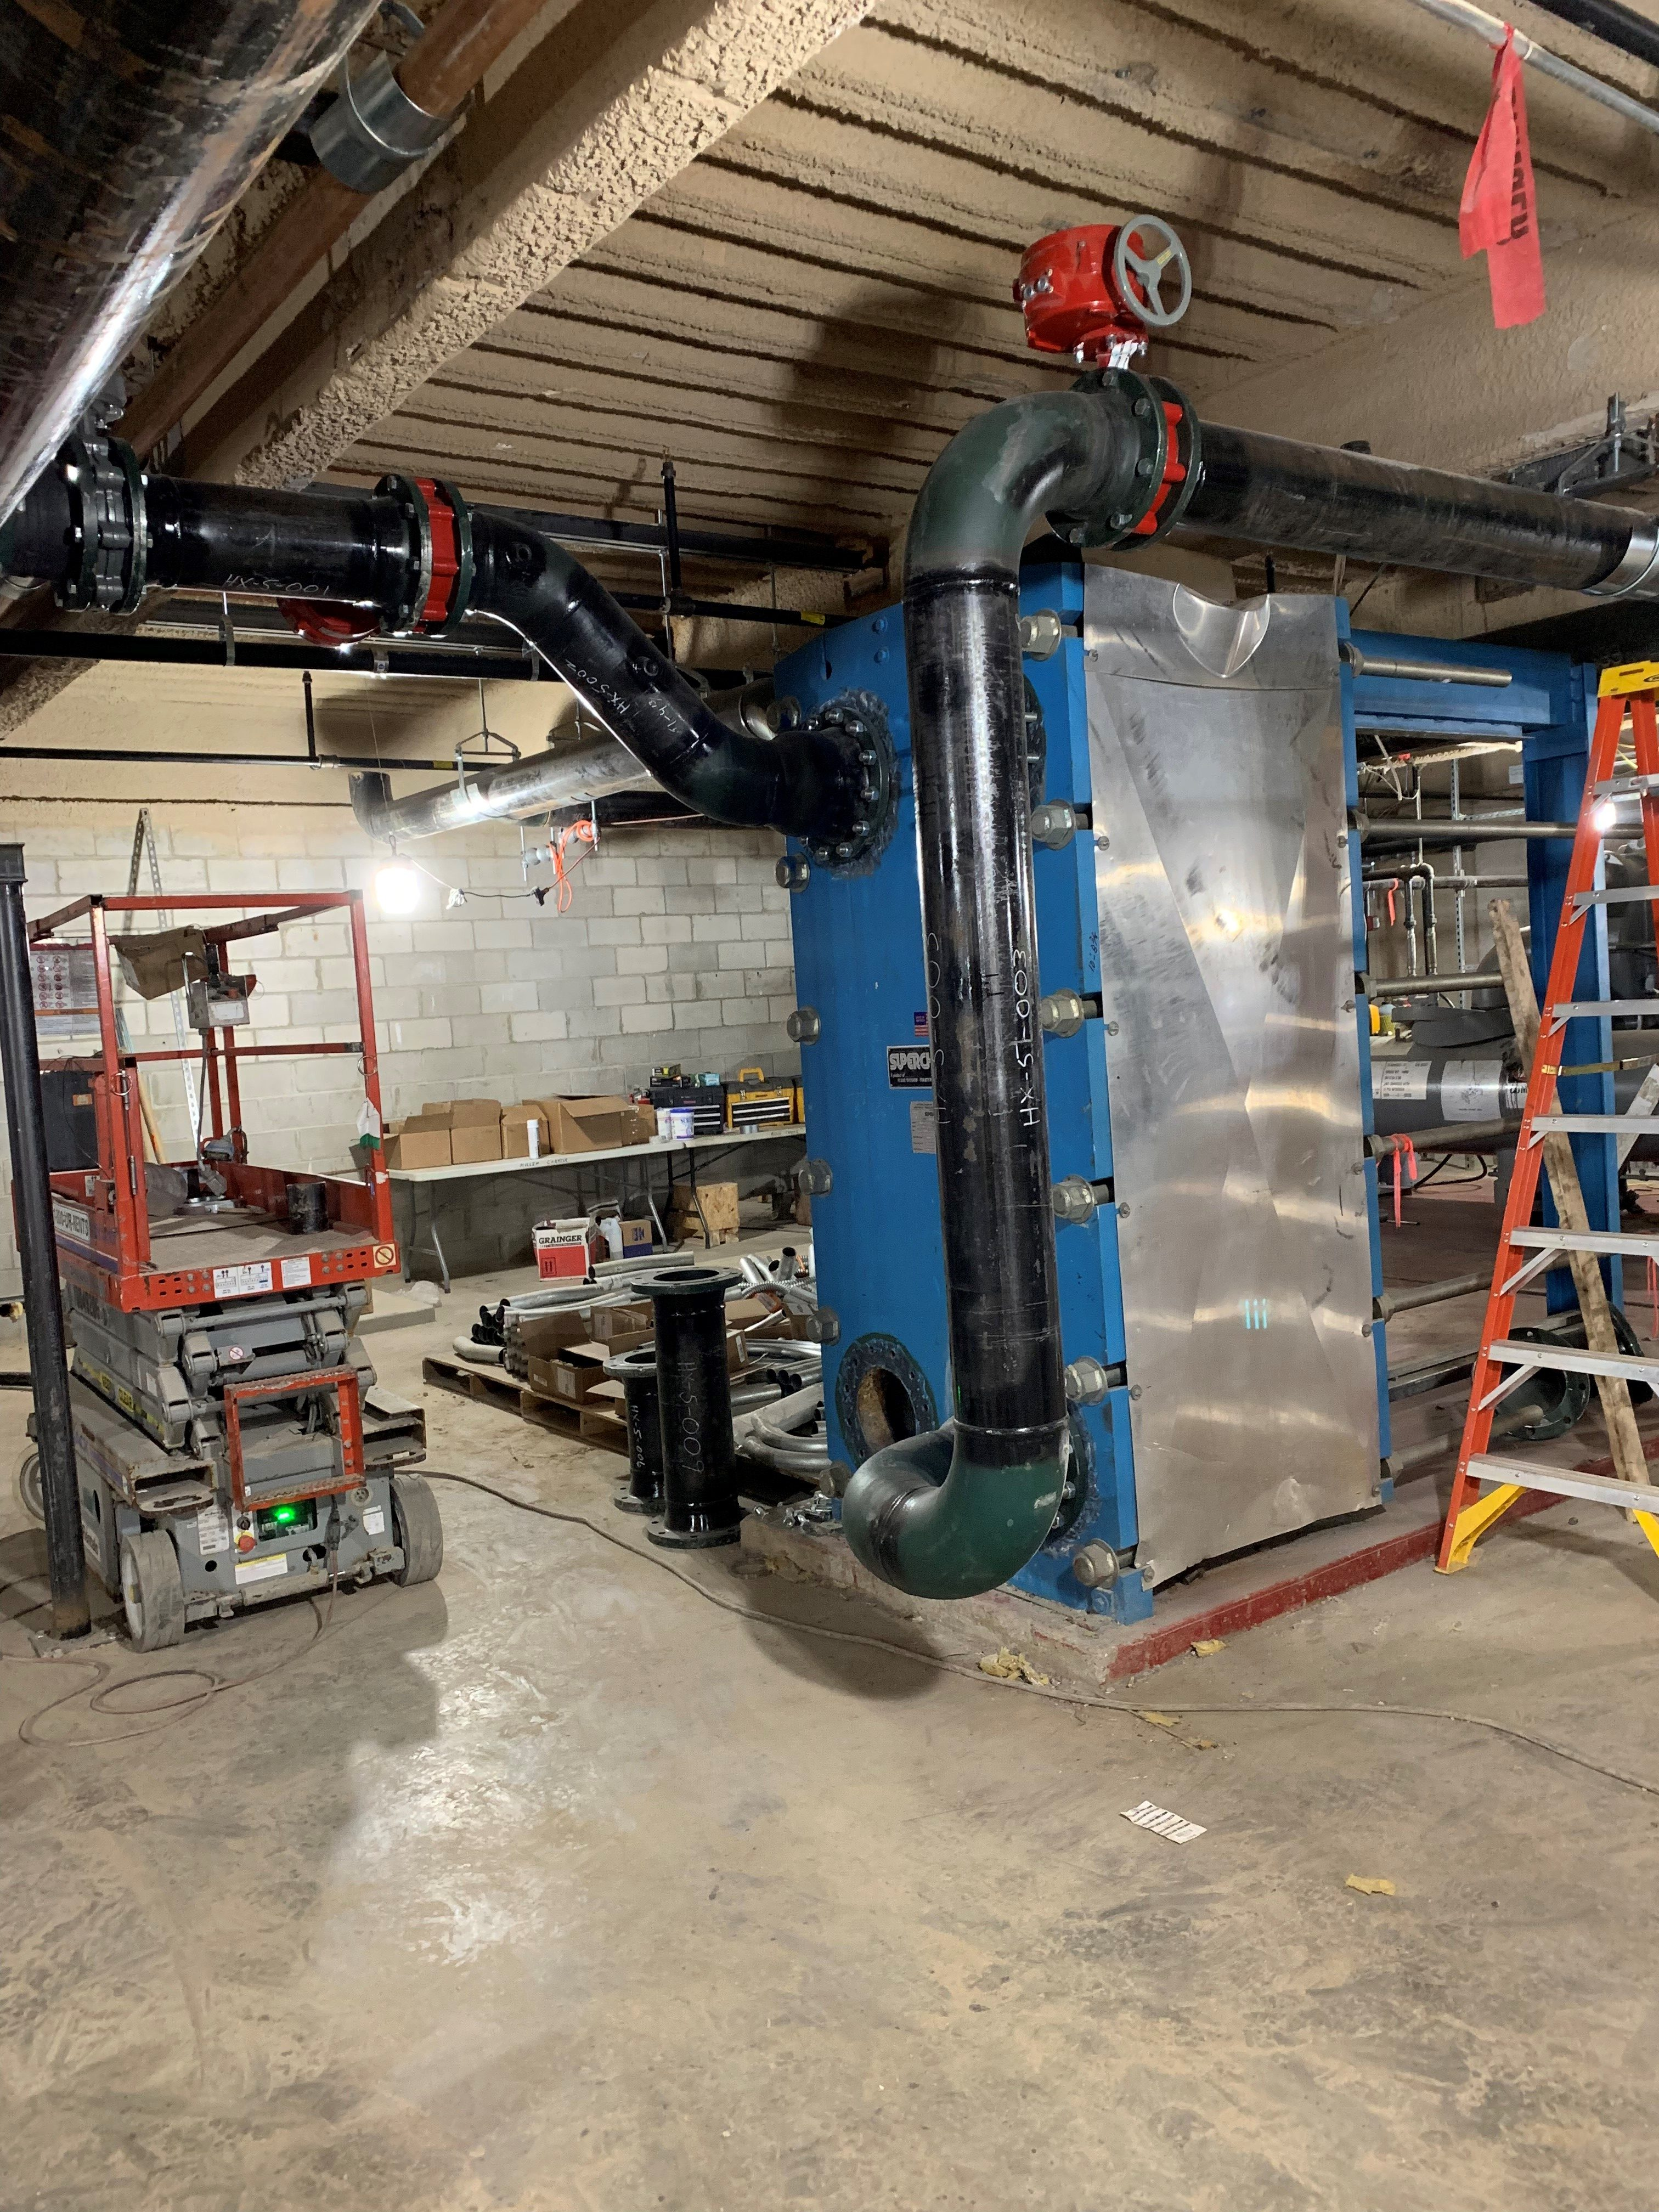 Heat_Exchanger_fabricated_pipe_Advanced_Mechanical_NJ_Barclays